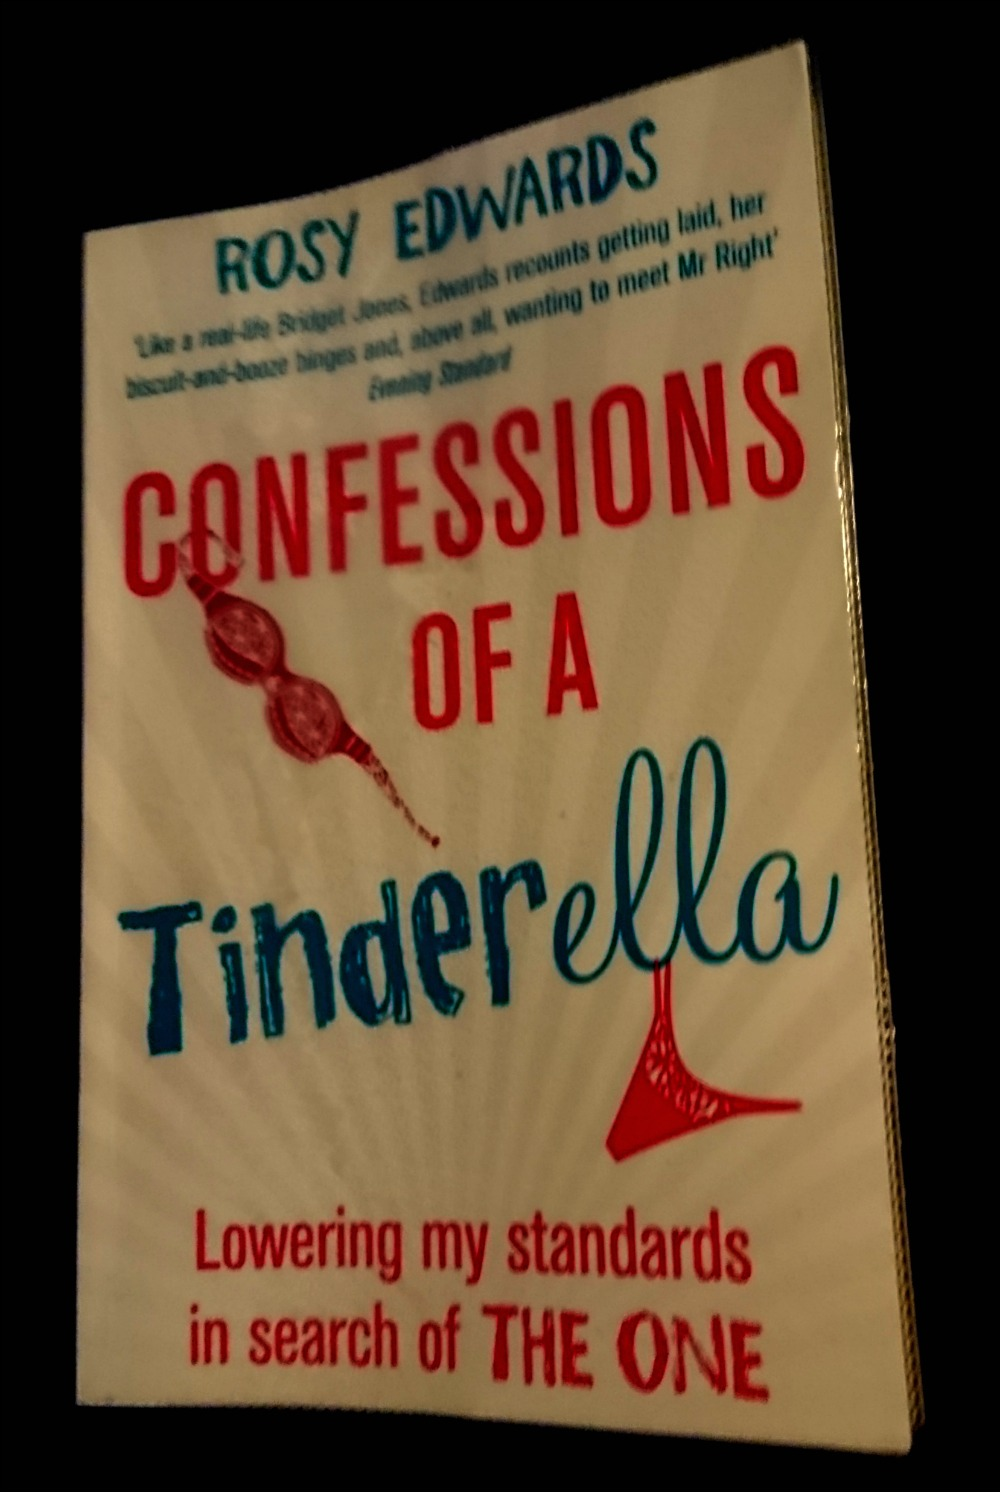 Confessions of a Tinderella by Rosy Edwards book cover